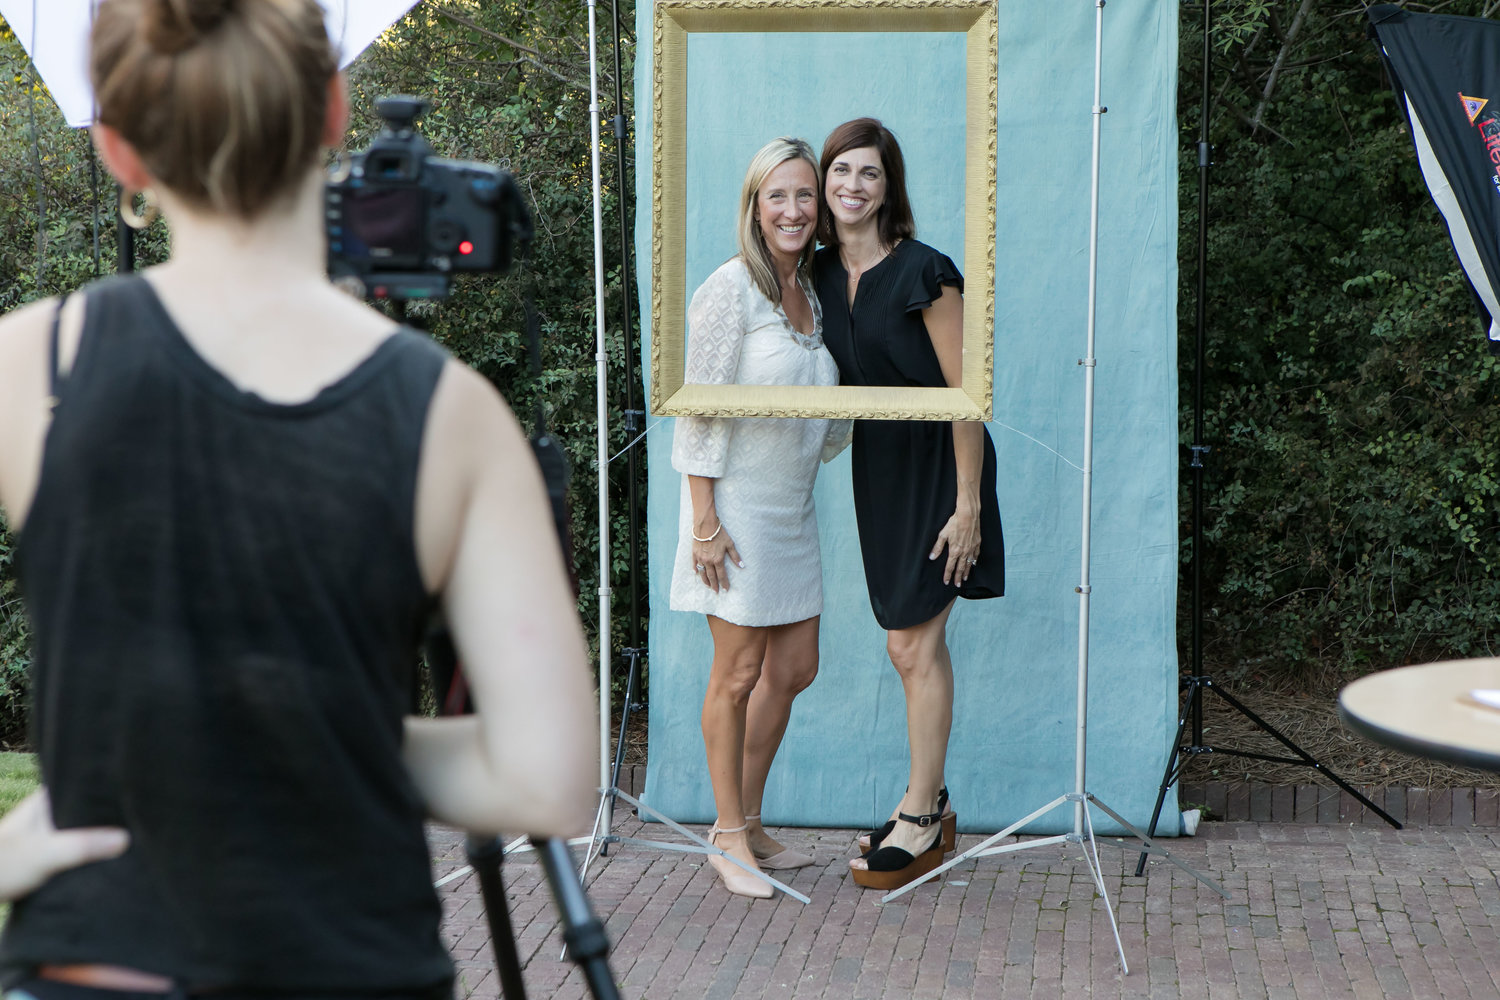 Photo booth provided by    Charity Ponter    (p.s. that's Elizabeth and Christi in the frame.) Photo by Emily Kicklighter